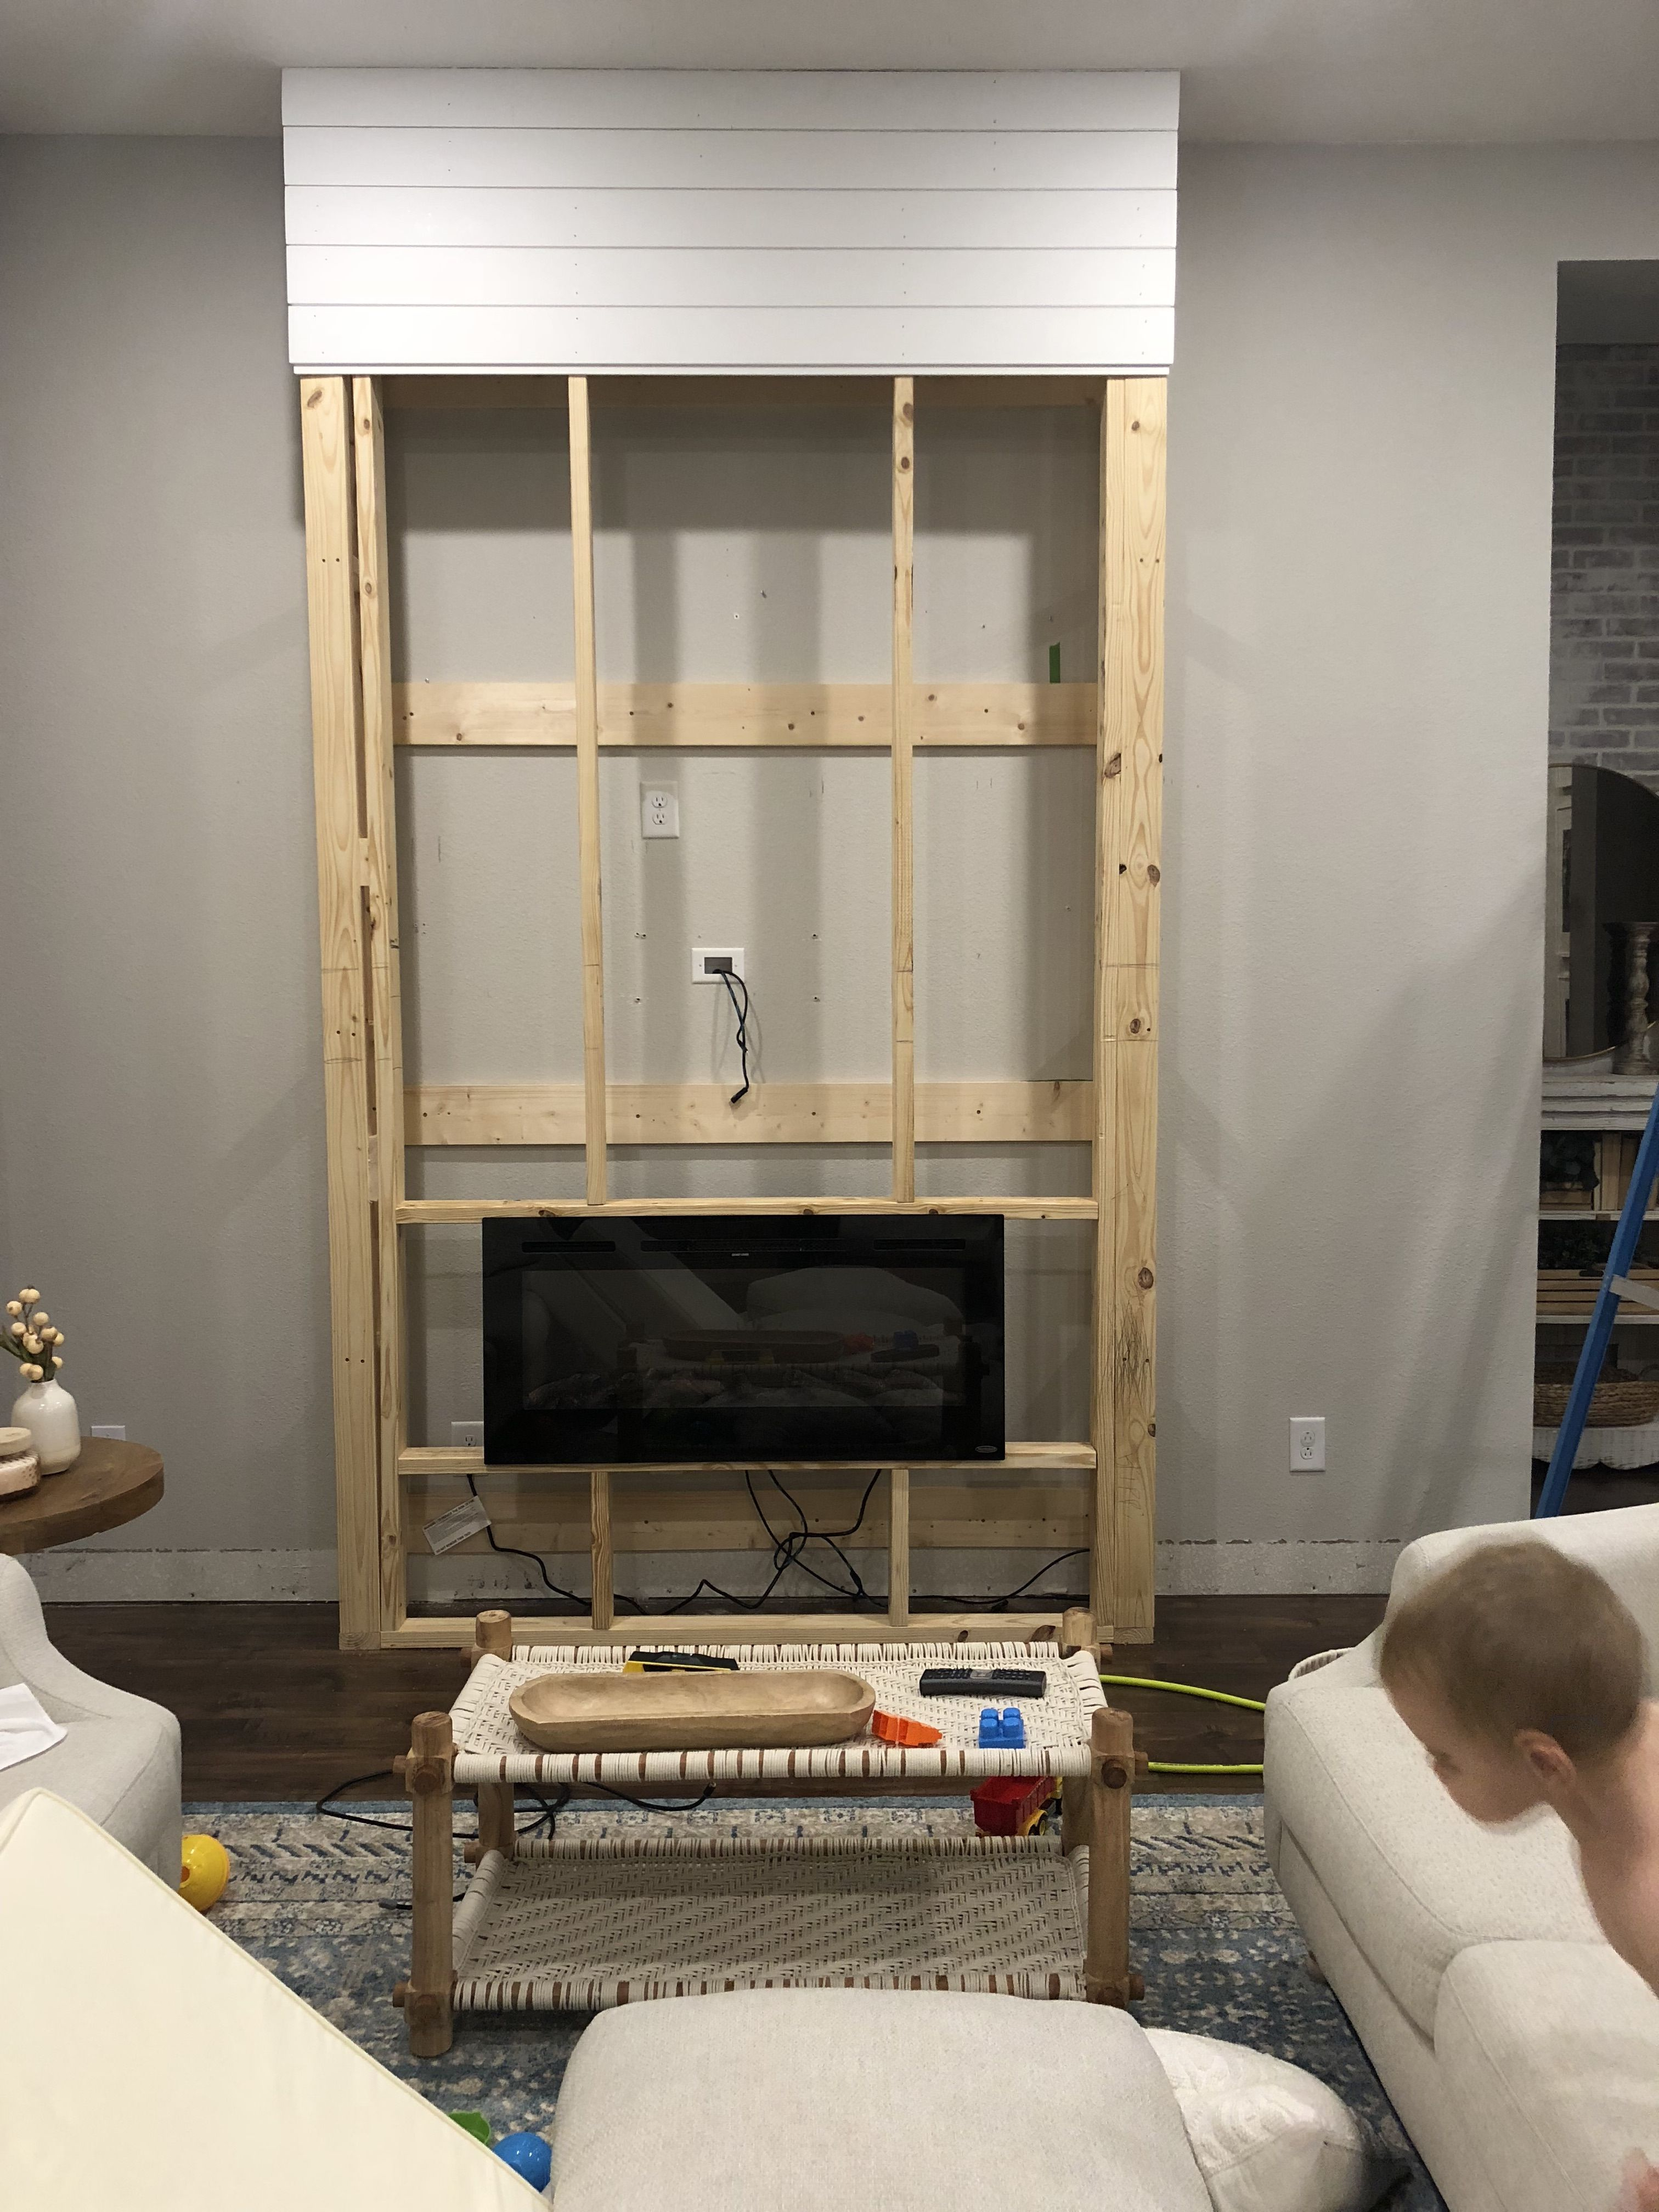 Installing A Fireplace Our New Samsung Frame Tv With Images